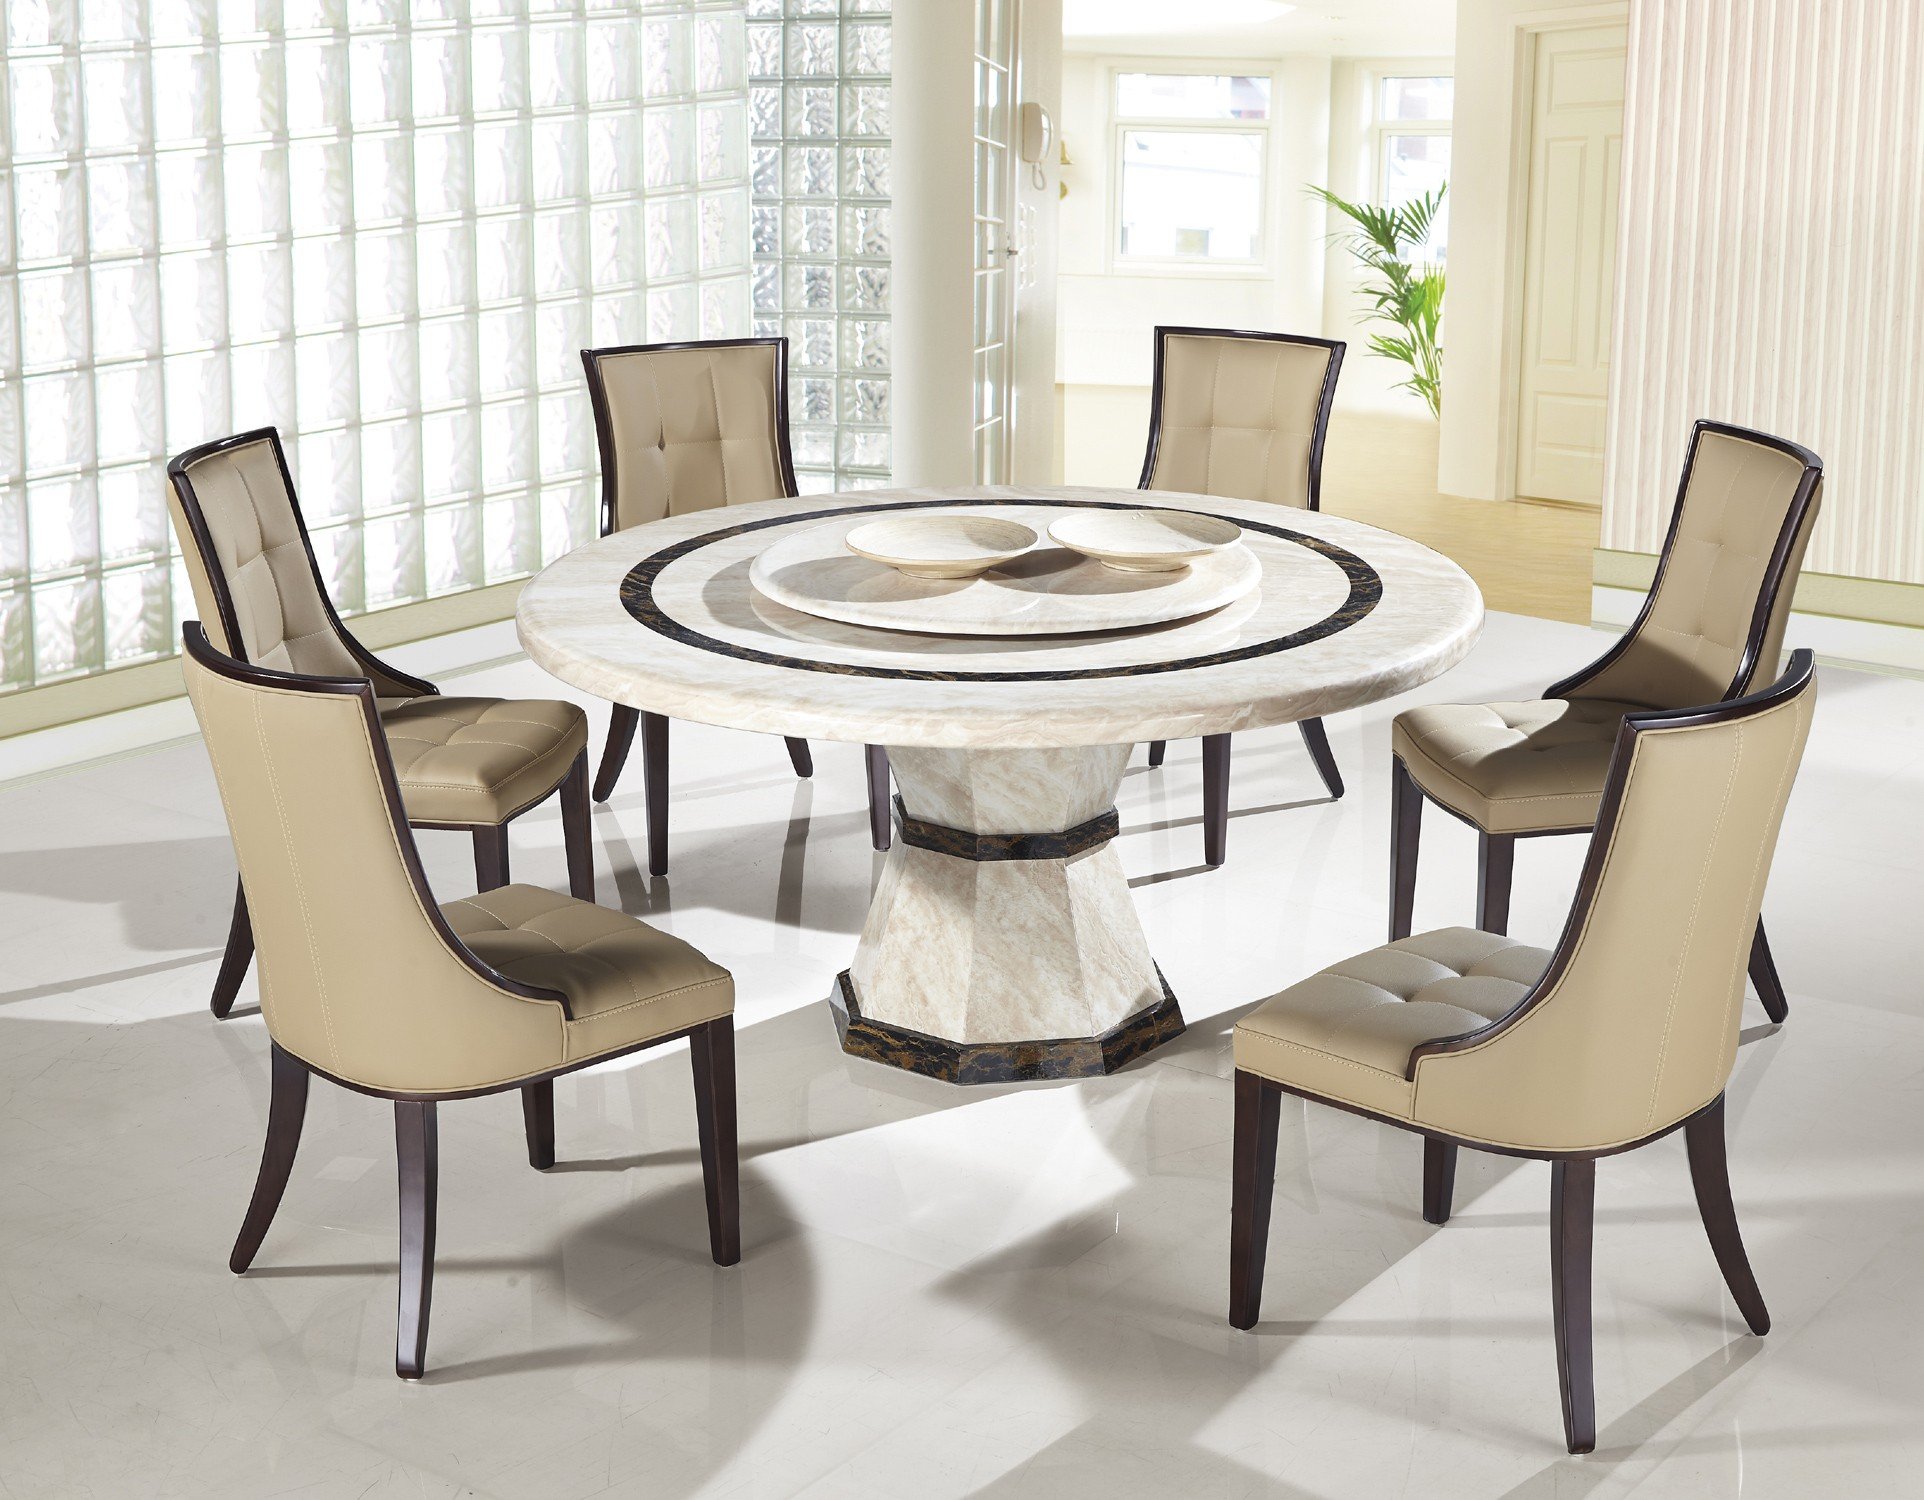 Awesome modern round table and chairs light of dining room for Dining room round table